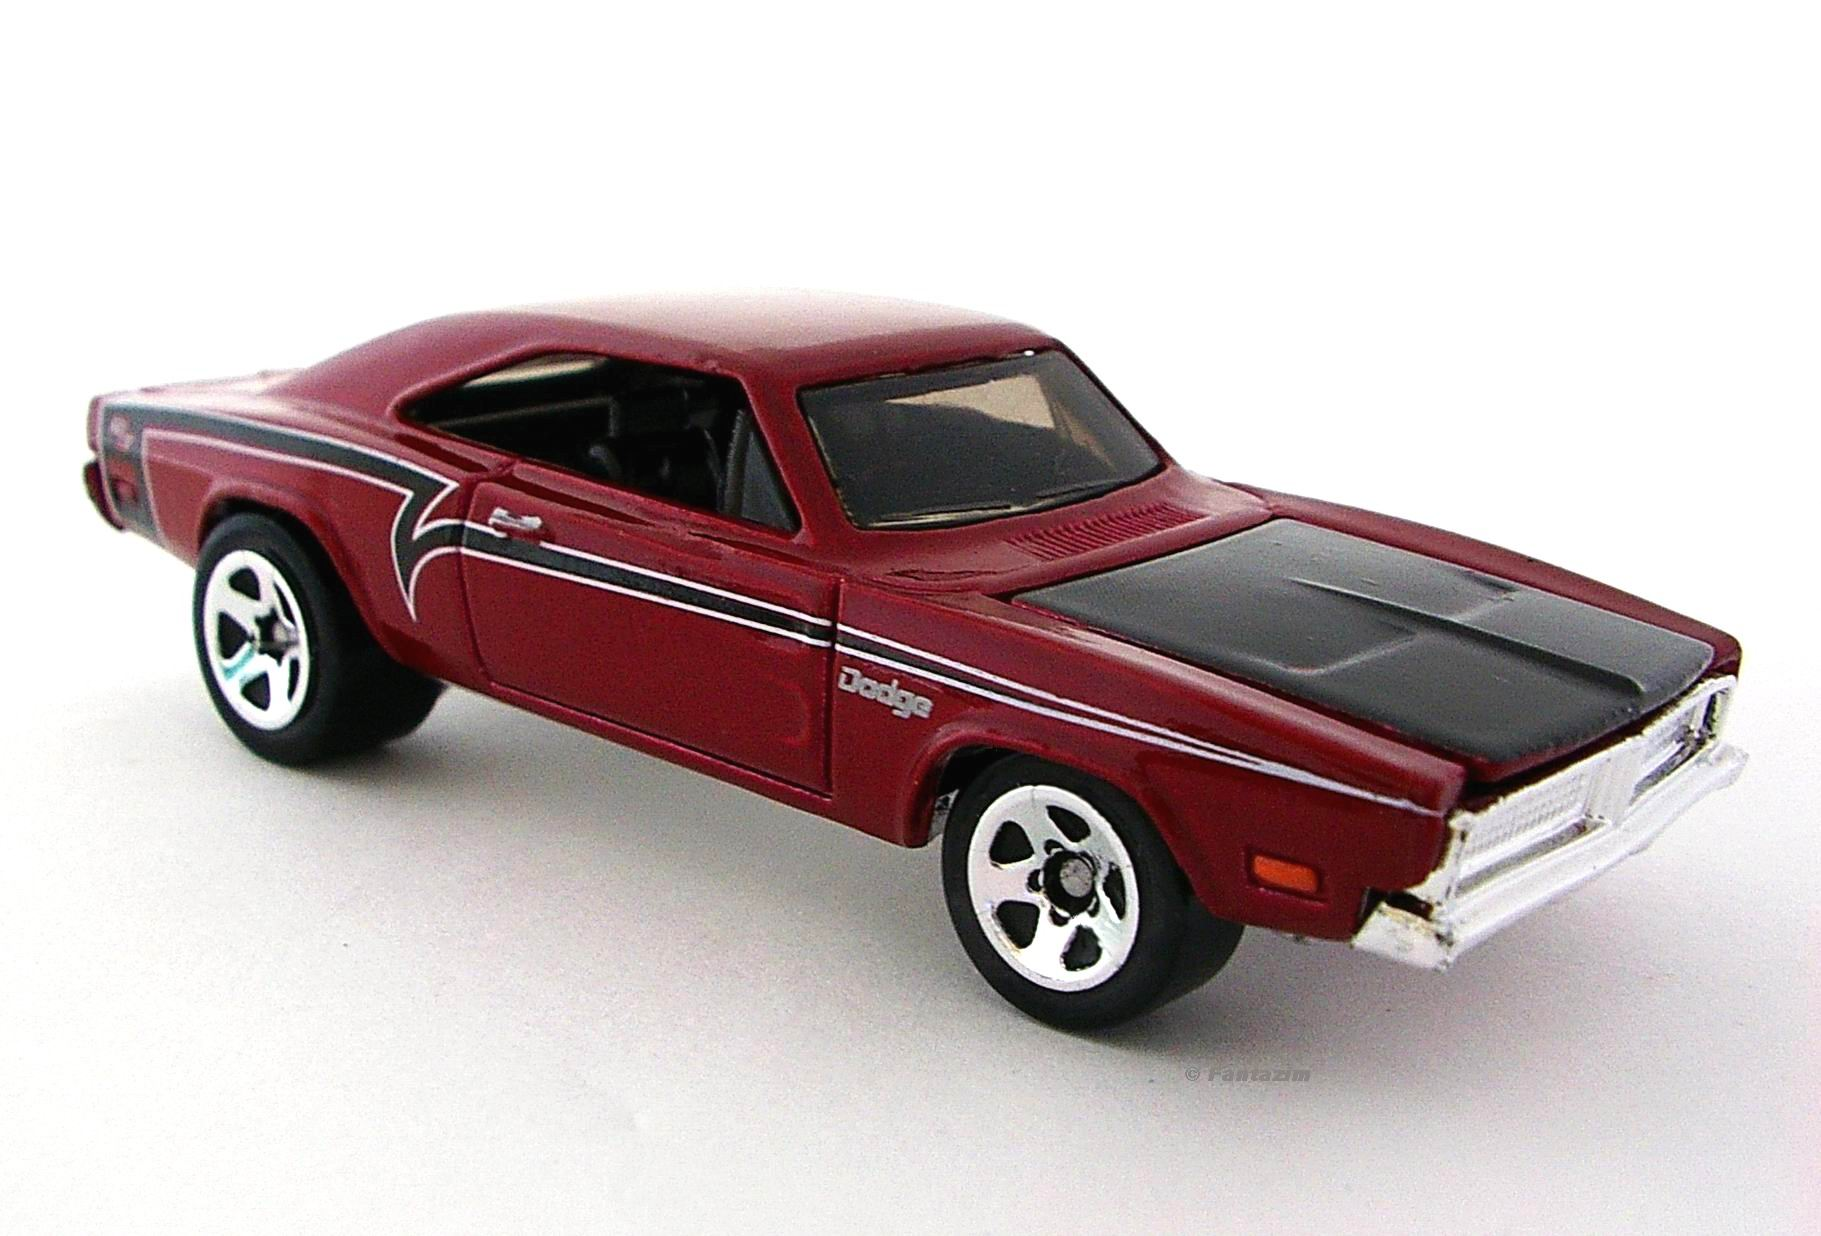 '69 Dodge Charger - Hot Wheels